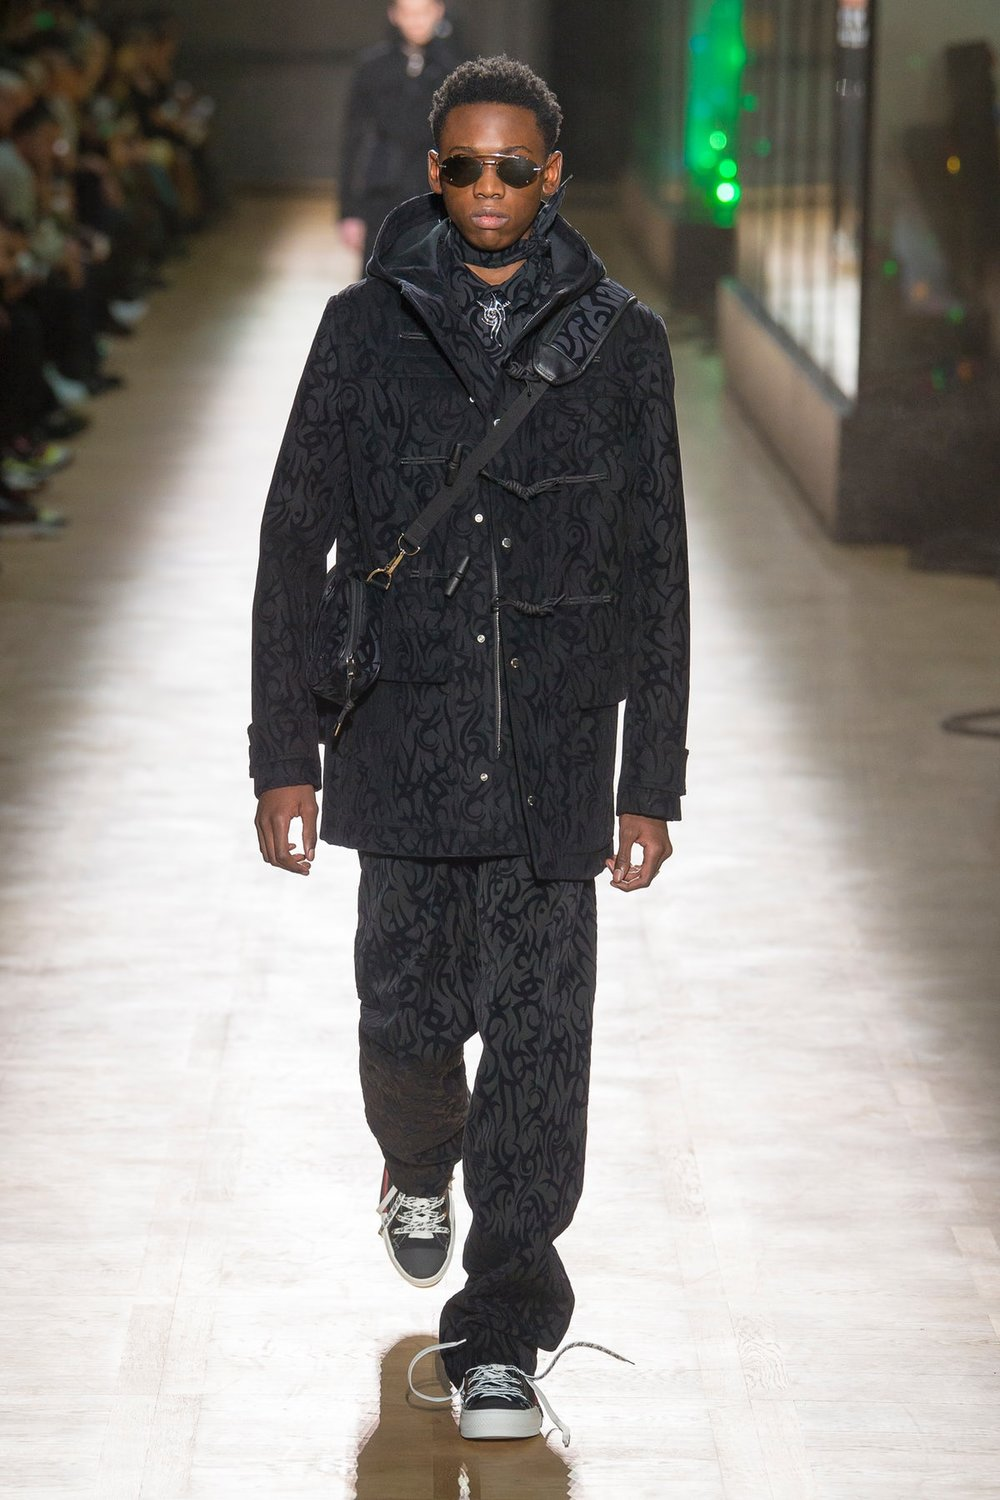 dior_homme_look_44_menswear_autumn_2018.jpeg